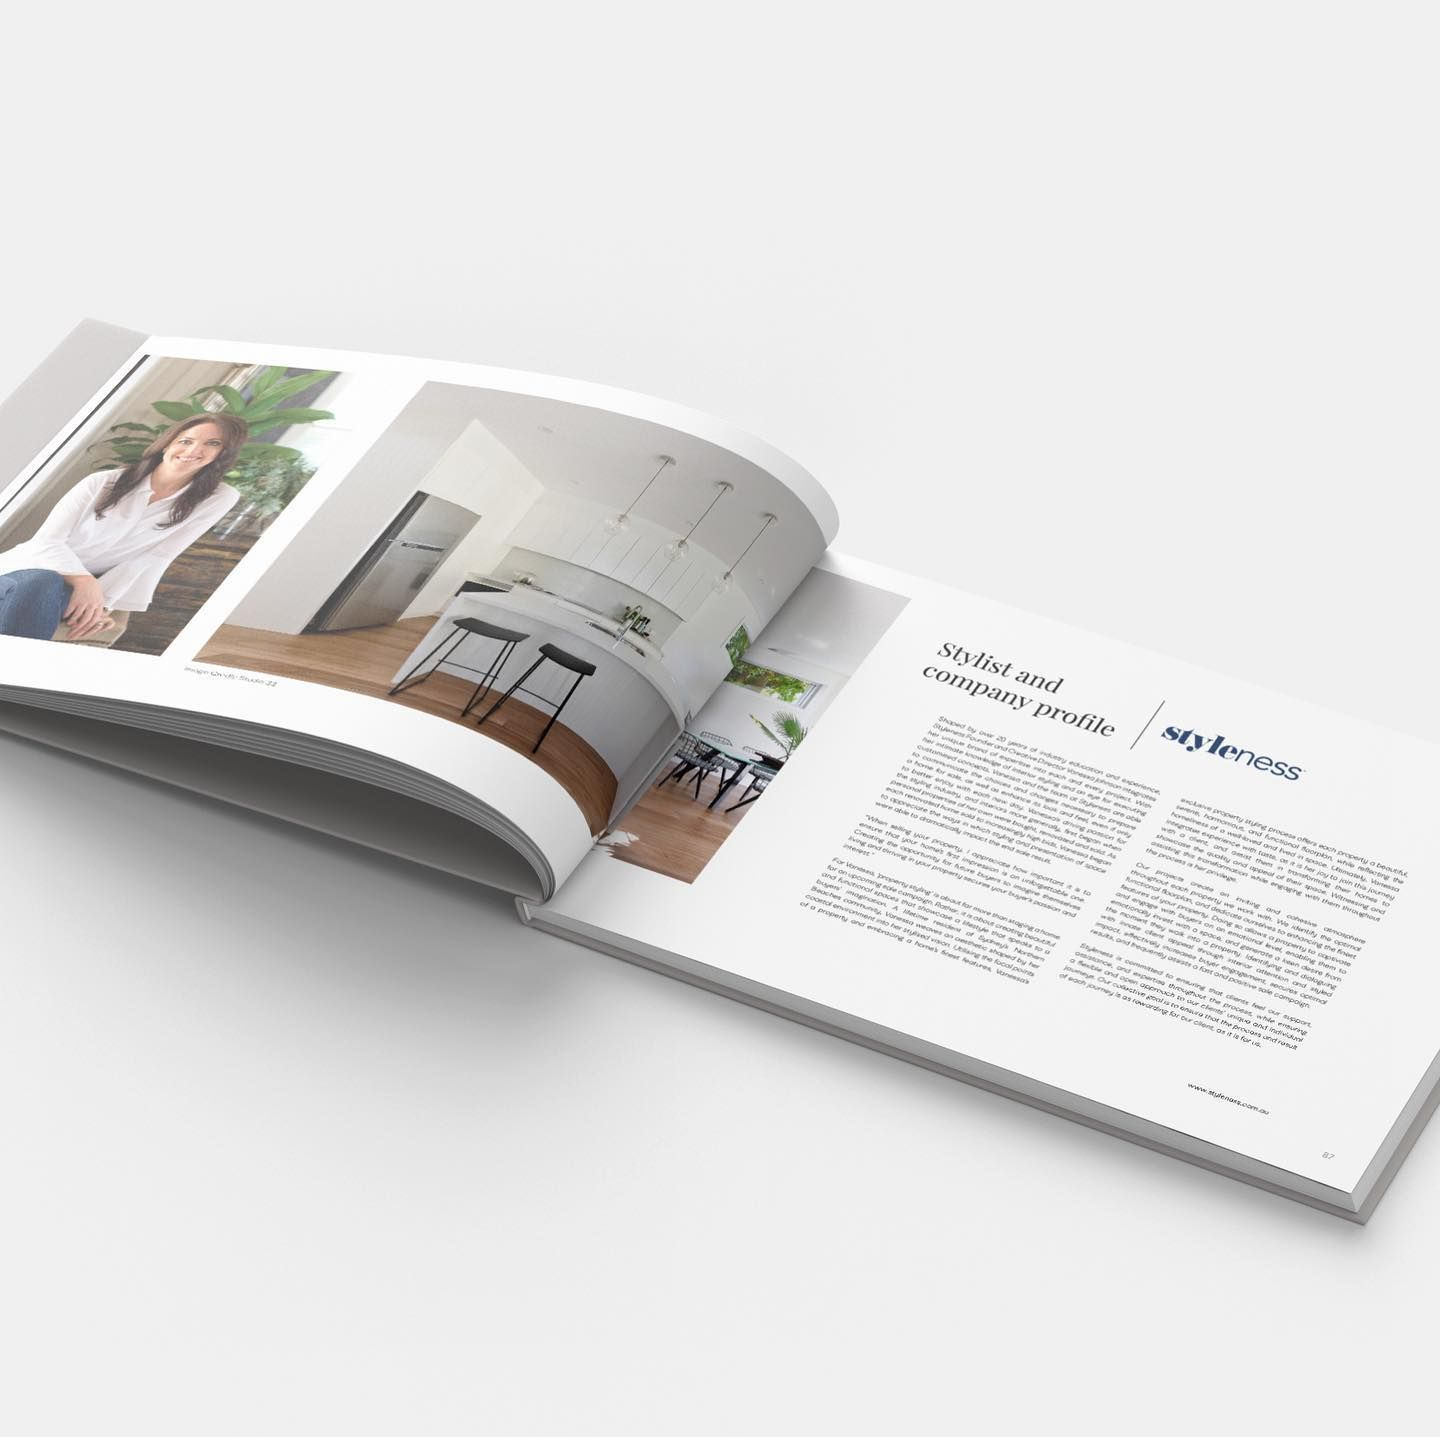 Property Stylists Australia 2020 #PSA2020book This book is ...